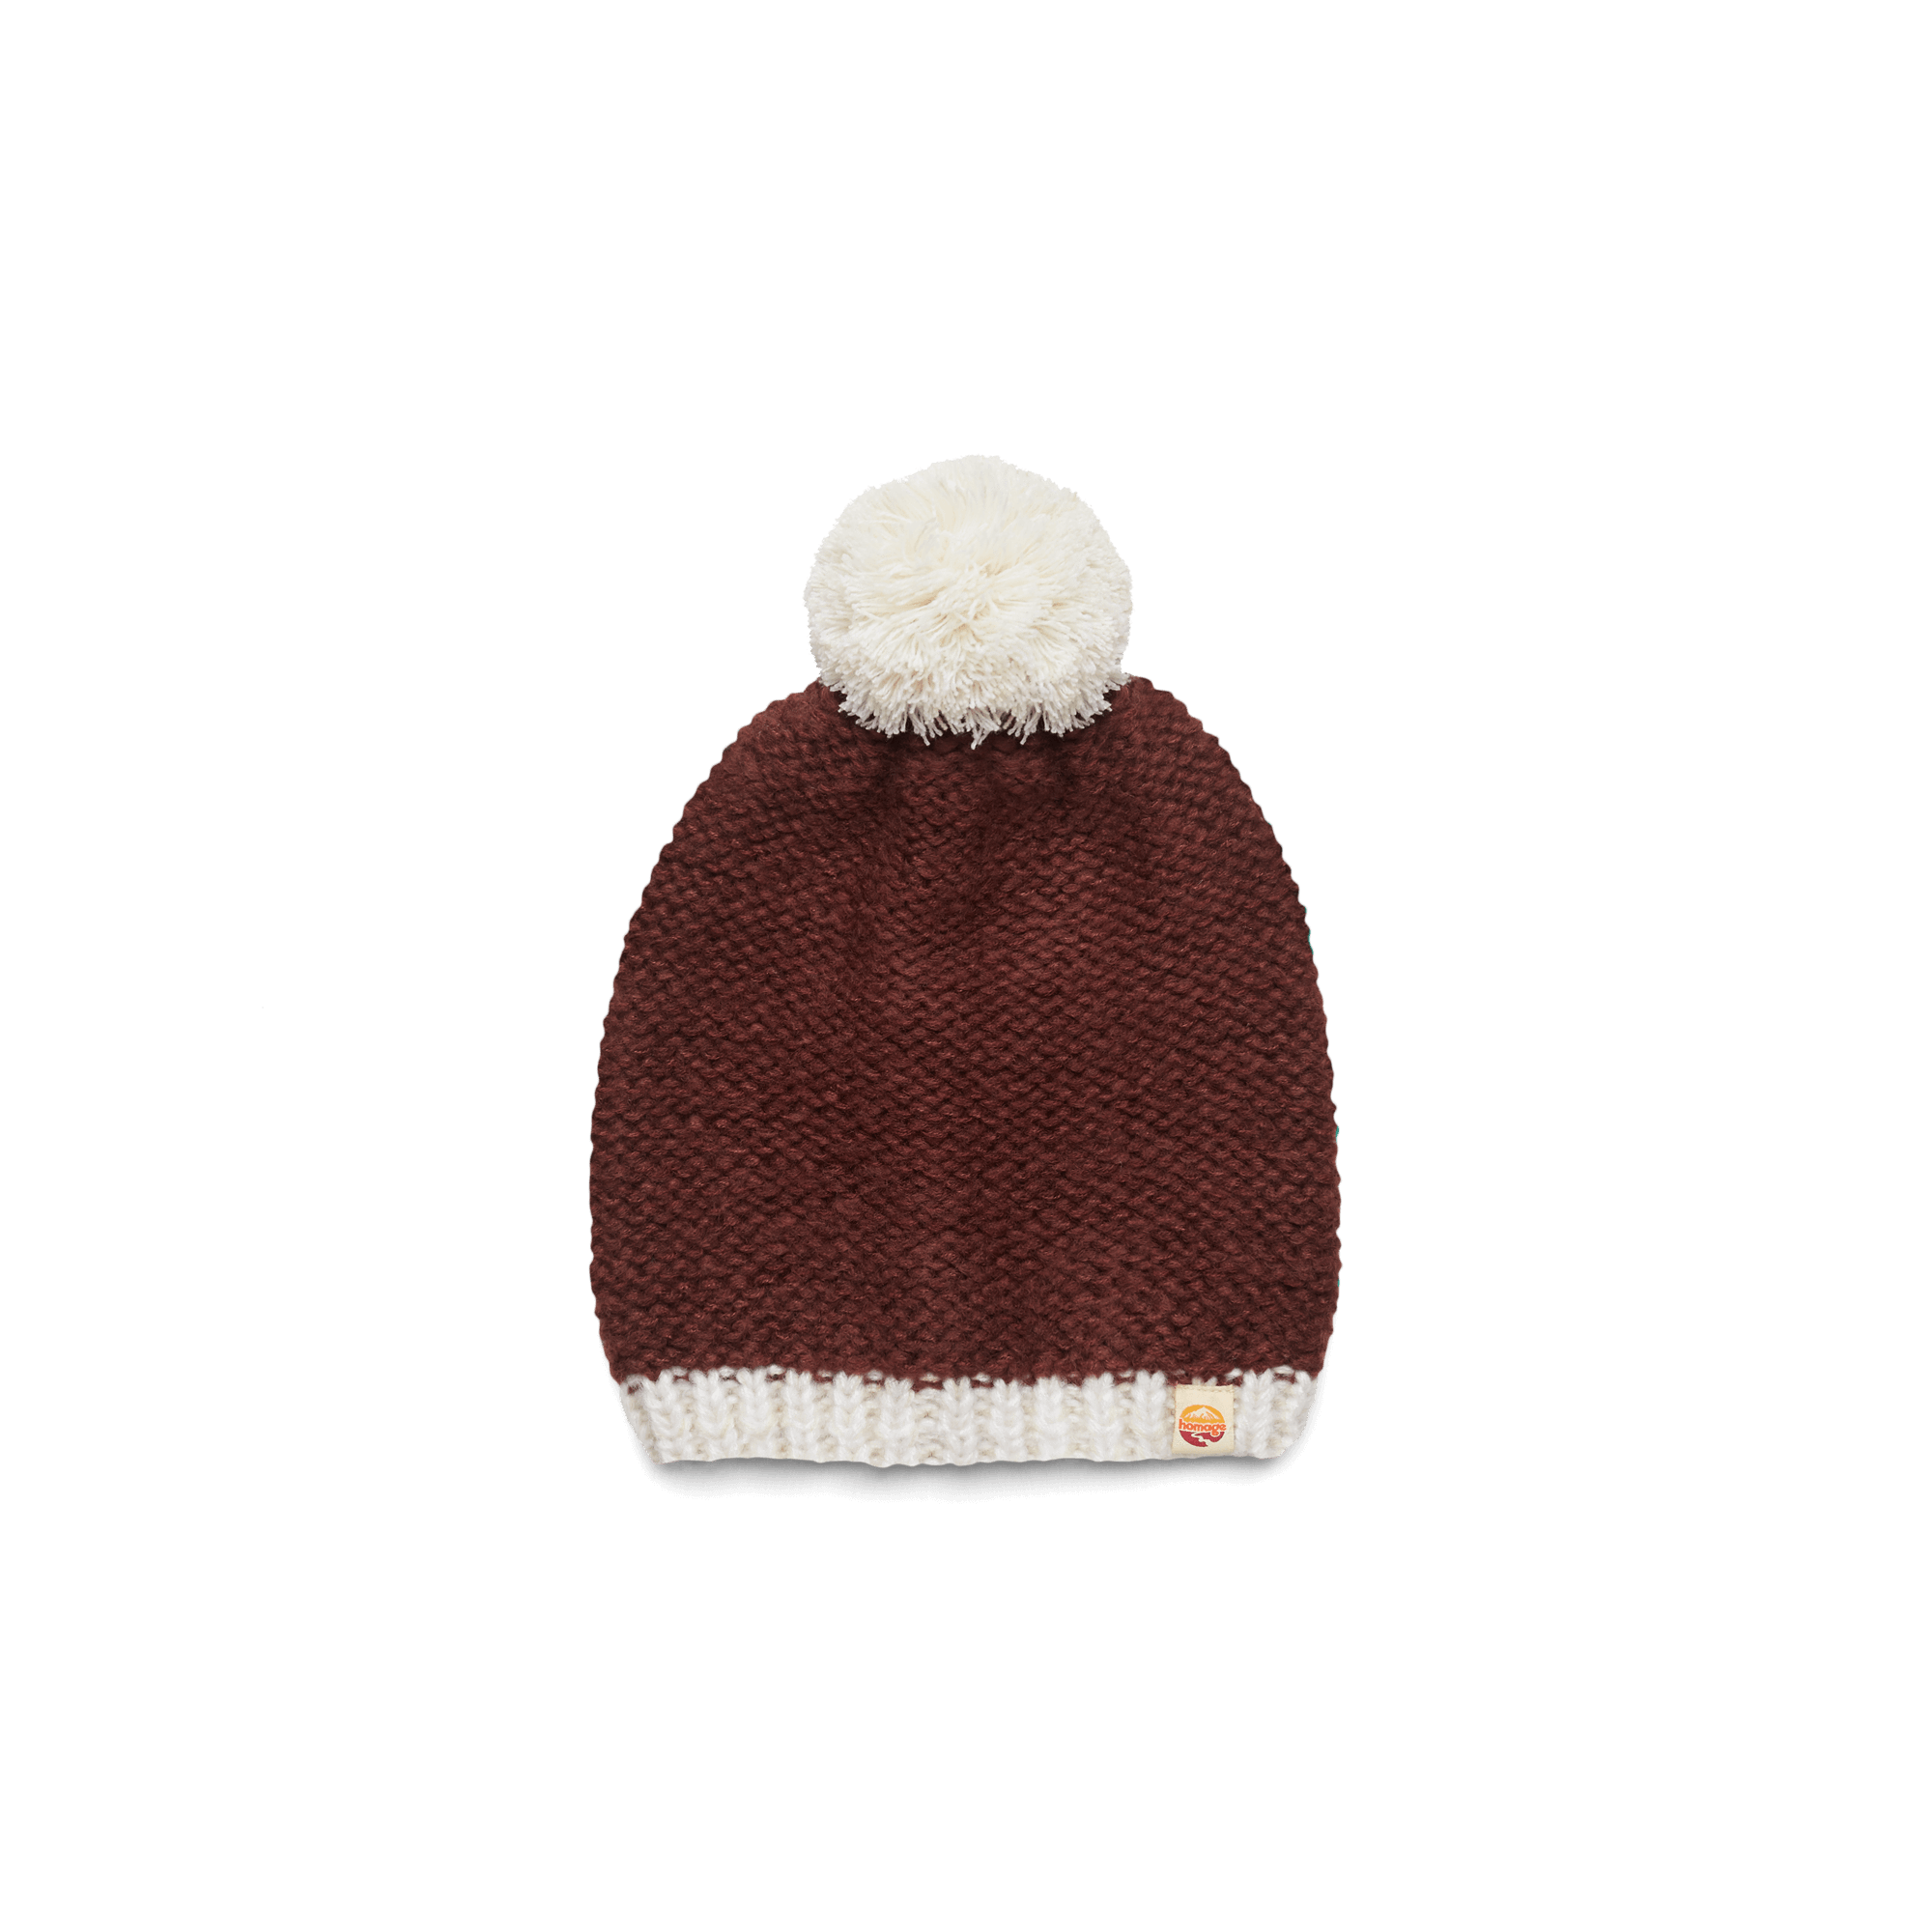 8fff14c13 Retro Headwear Including Snapbacks Winter Hats And More – HOMAGE